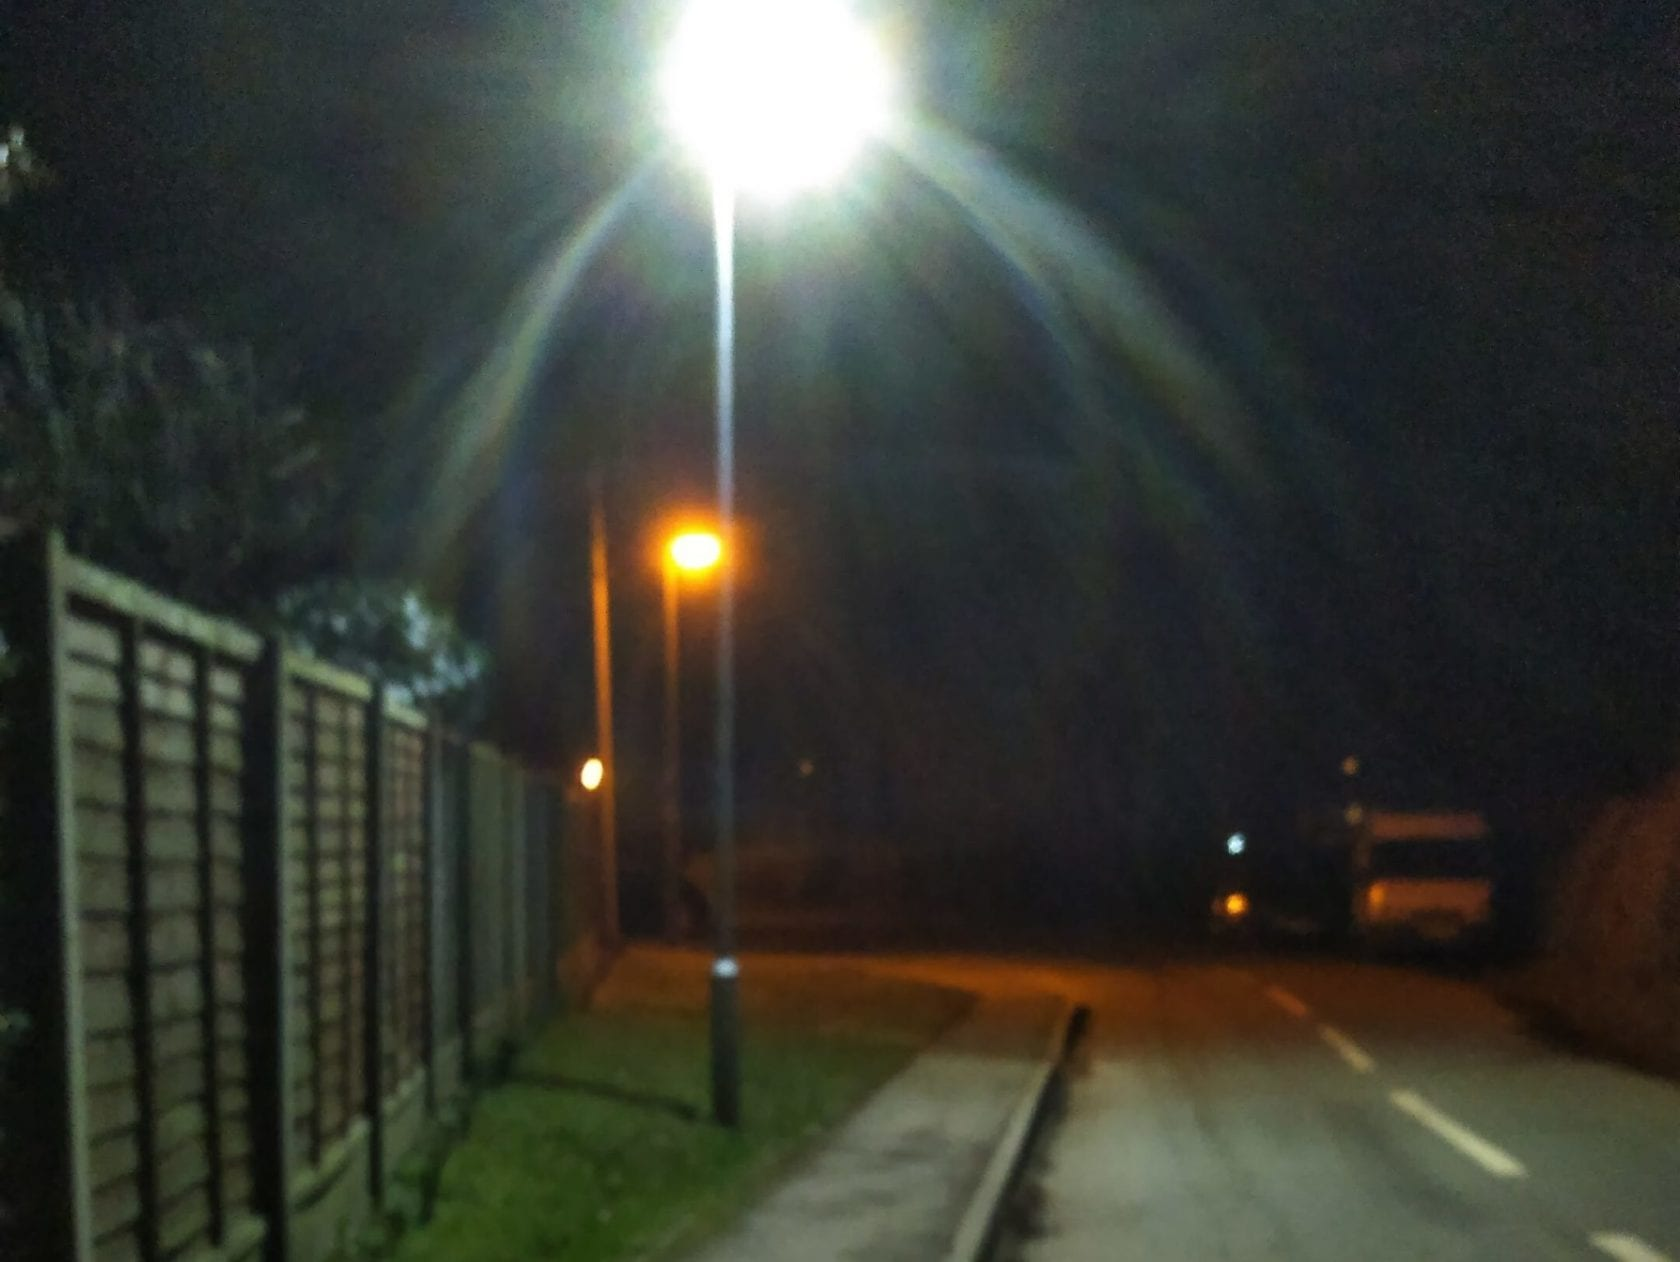 LED street light upgrades help cut crime and improve safety